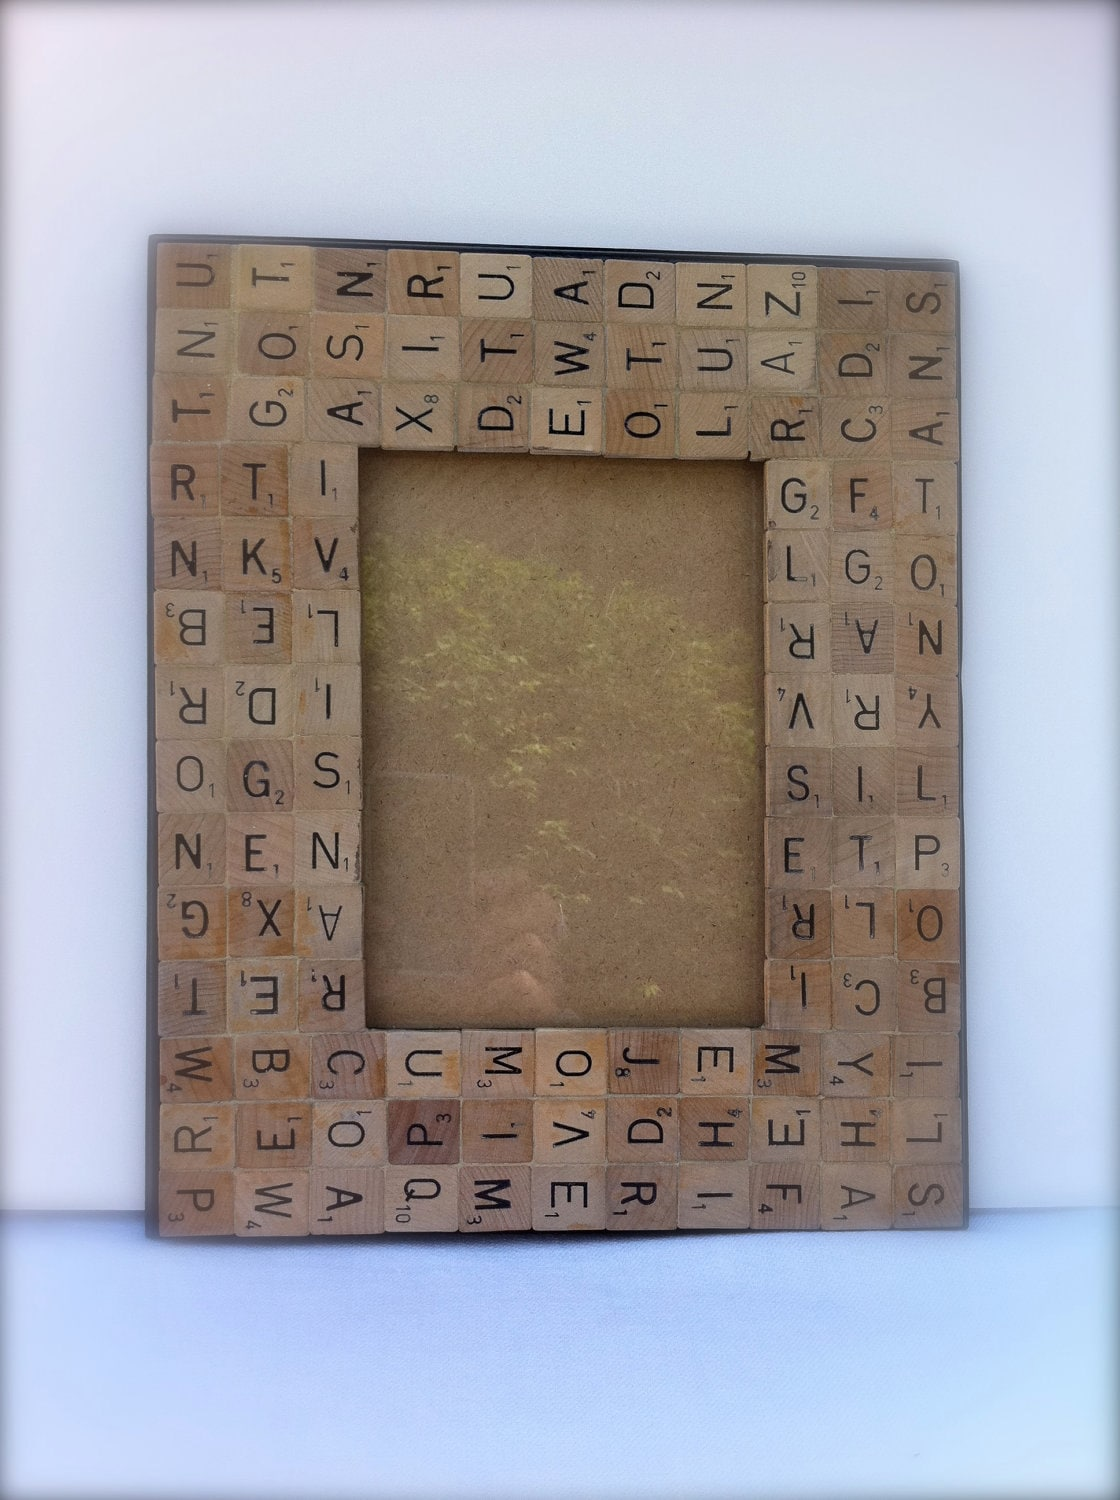 HALF OFF SALE All Mixed Up Made To Order 5 X 7 Scrabble Tiles